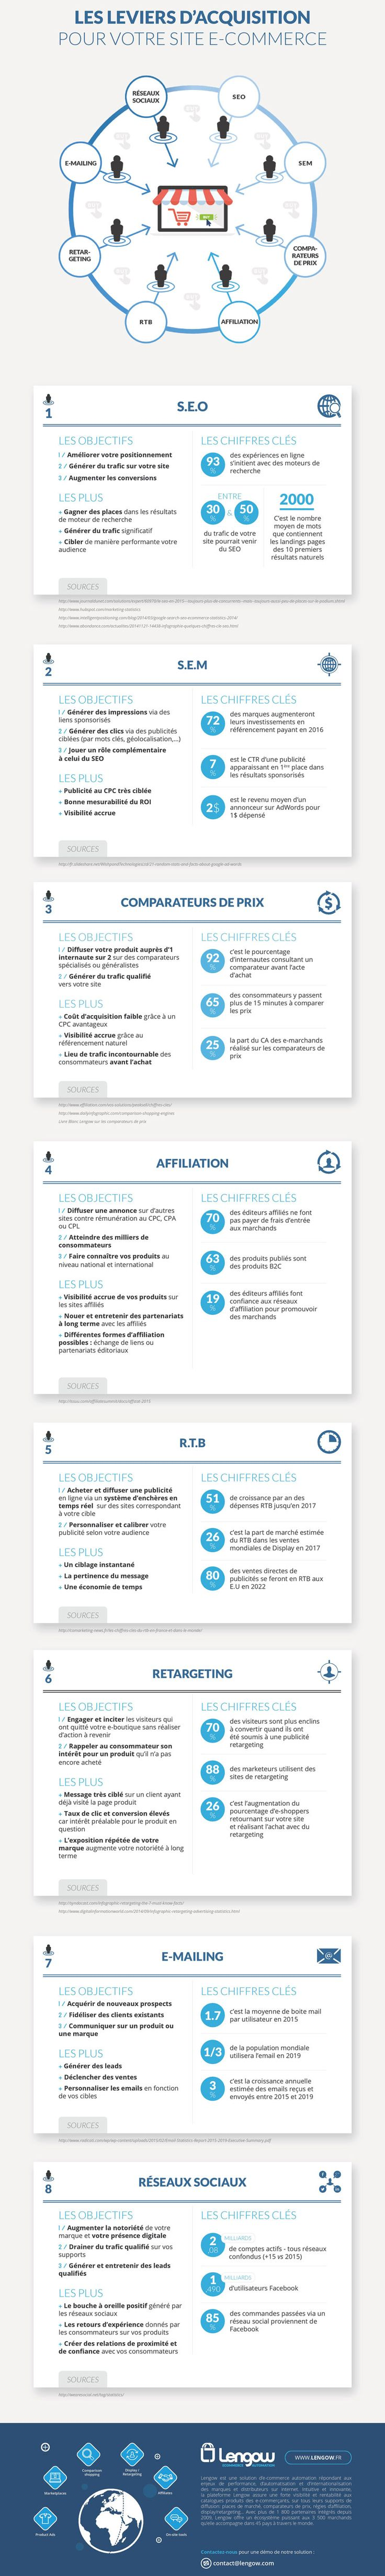 https://social-media-strategy-template.blogspot.com/ #DigitalMedia [Infographie] Les leviers d'acquisition les plus performants pour les sites e-commerce ? : Capitaine Commerce 3.6  If you actually read this you will make money online!  https://www.amazon.com/gp/product/1537268031/ref=as_li_qf_sp_asin_il_tl?ie=UTF8&tag=electri025-20&camp=1789&creative=9325&linkCode=as2&creativeASIN=1537268031&linkId=ae7529ff77208ada74f3f205bd03b4de